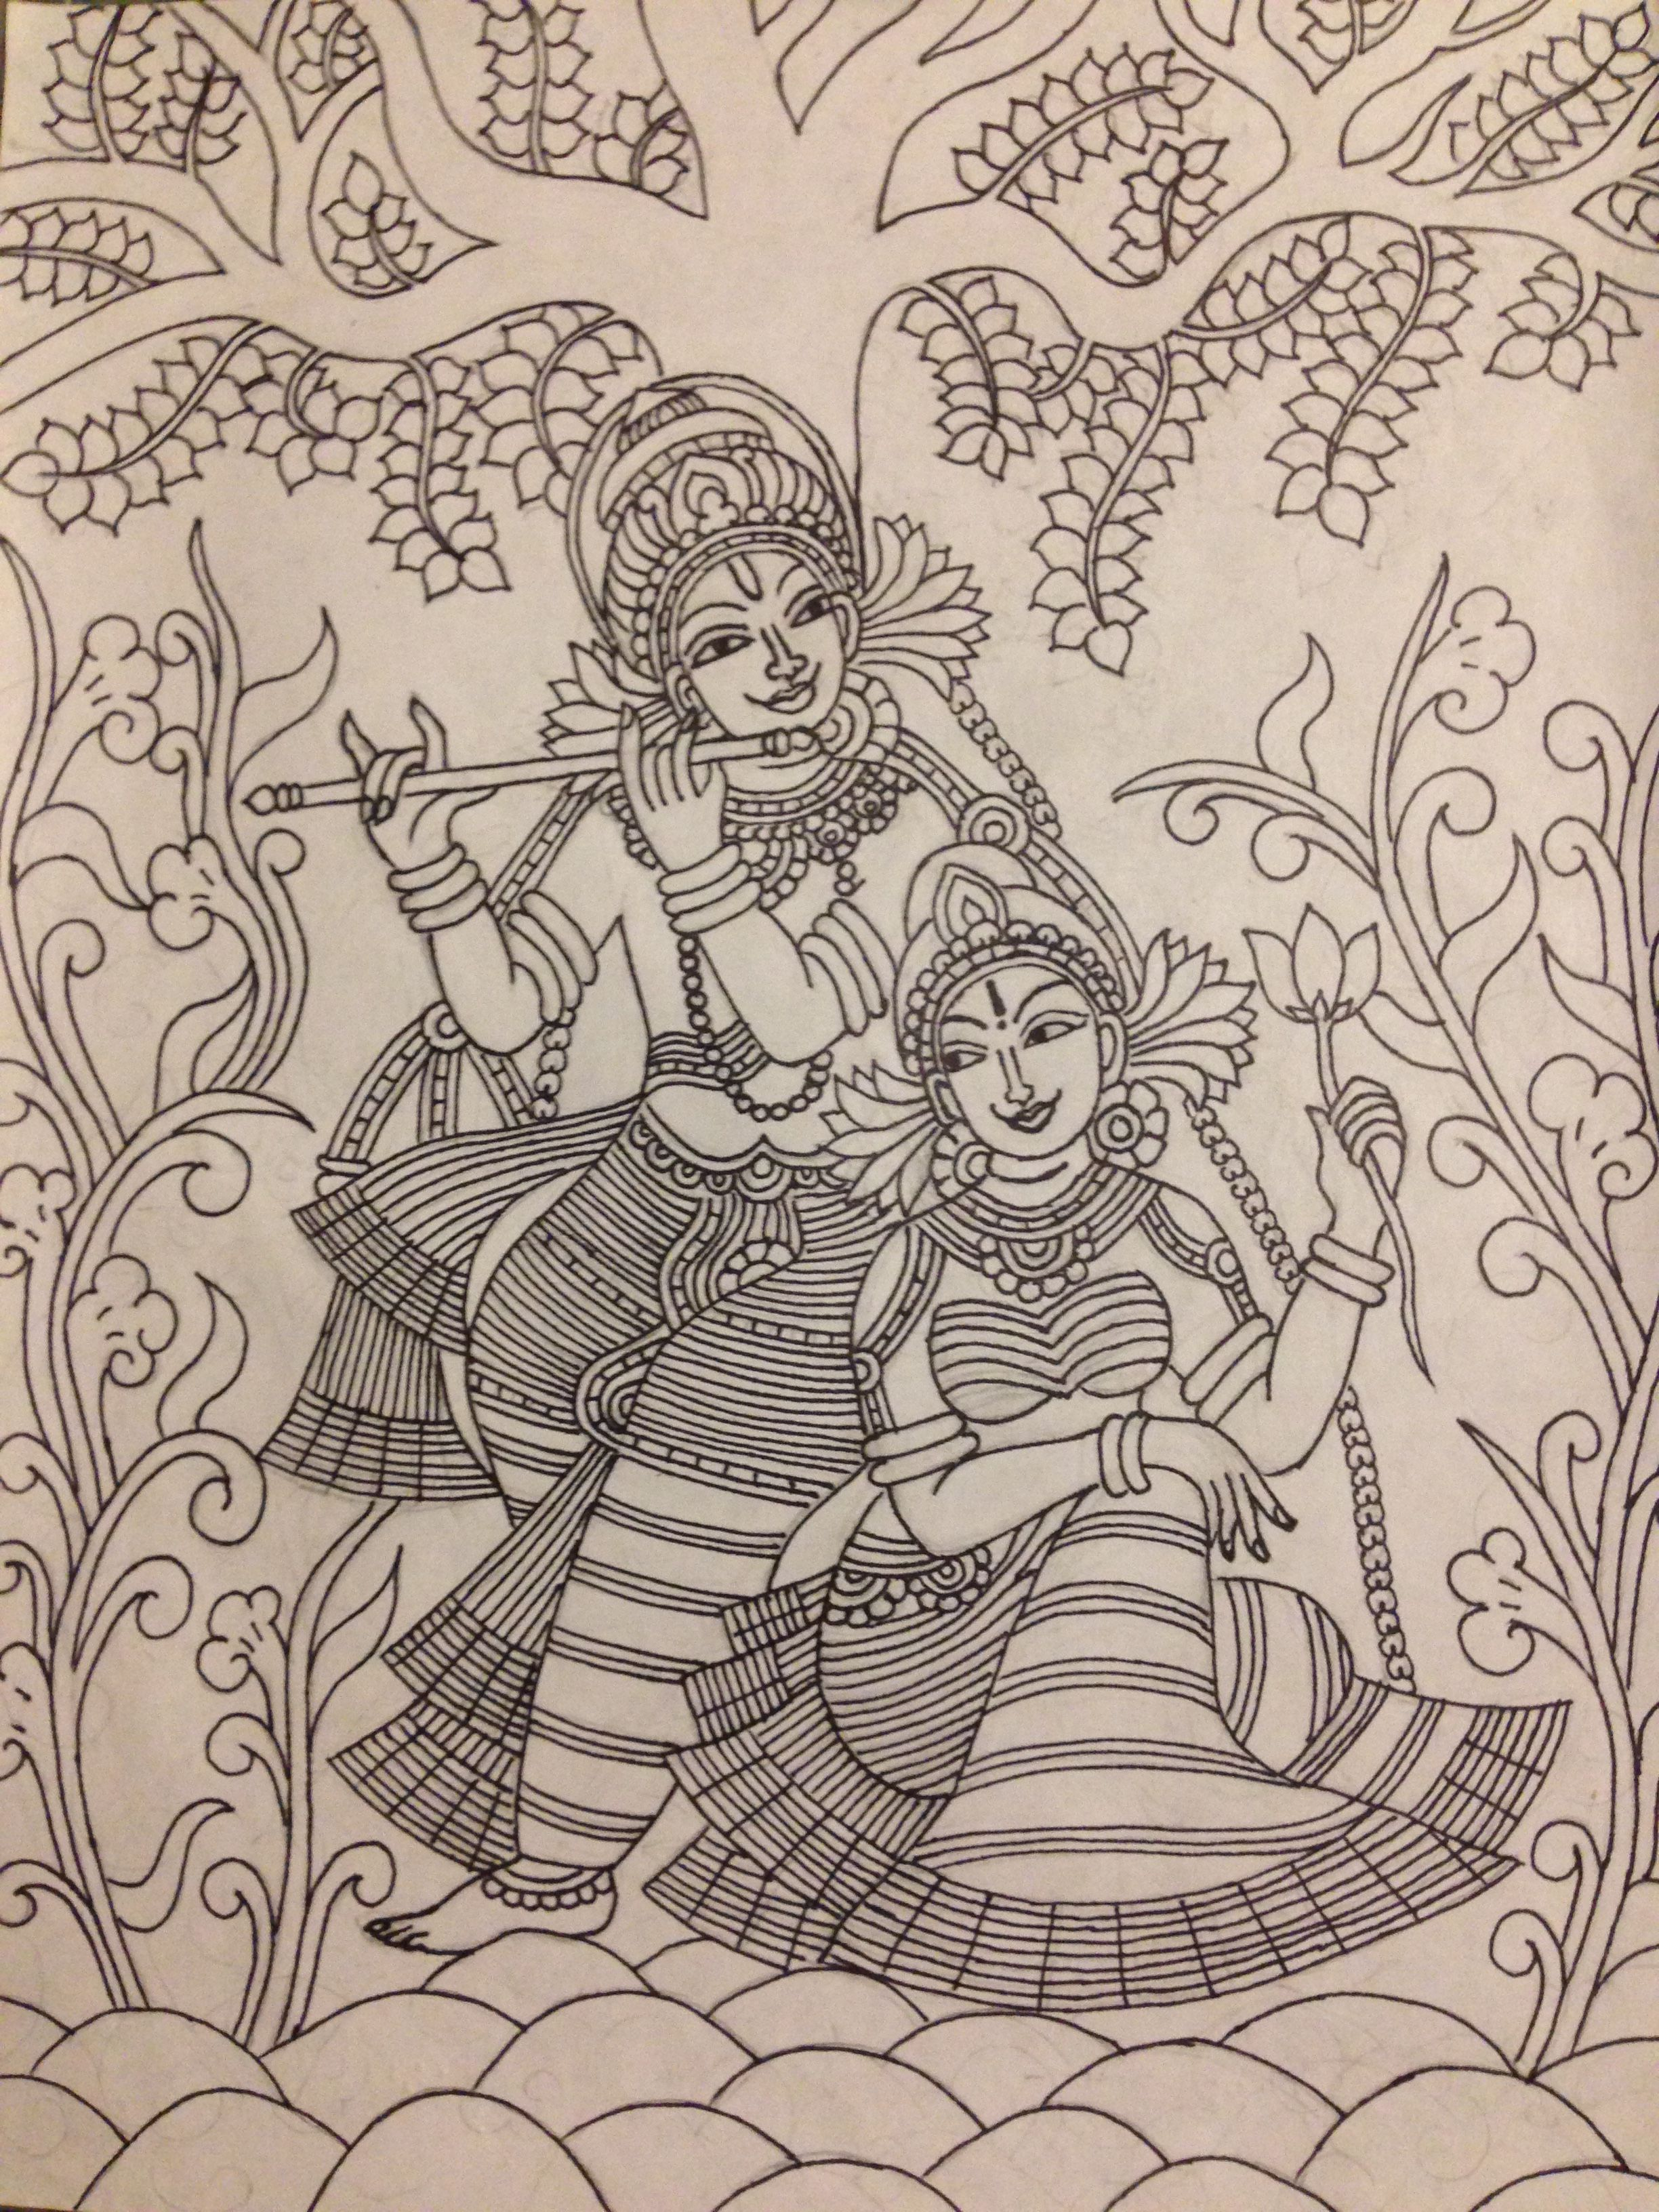 Krishna and radha mural pencil sketch